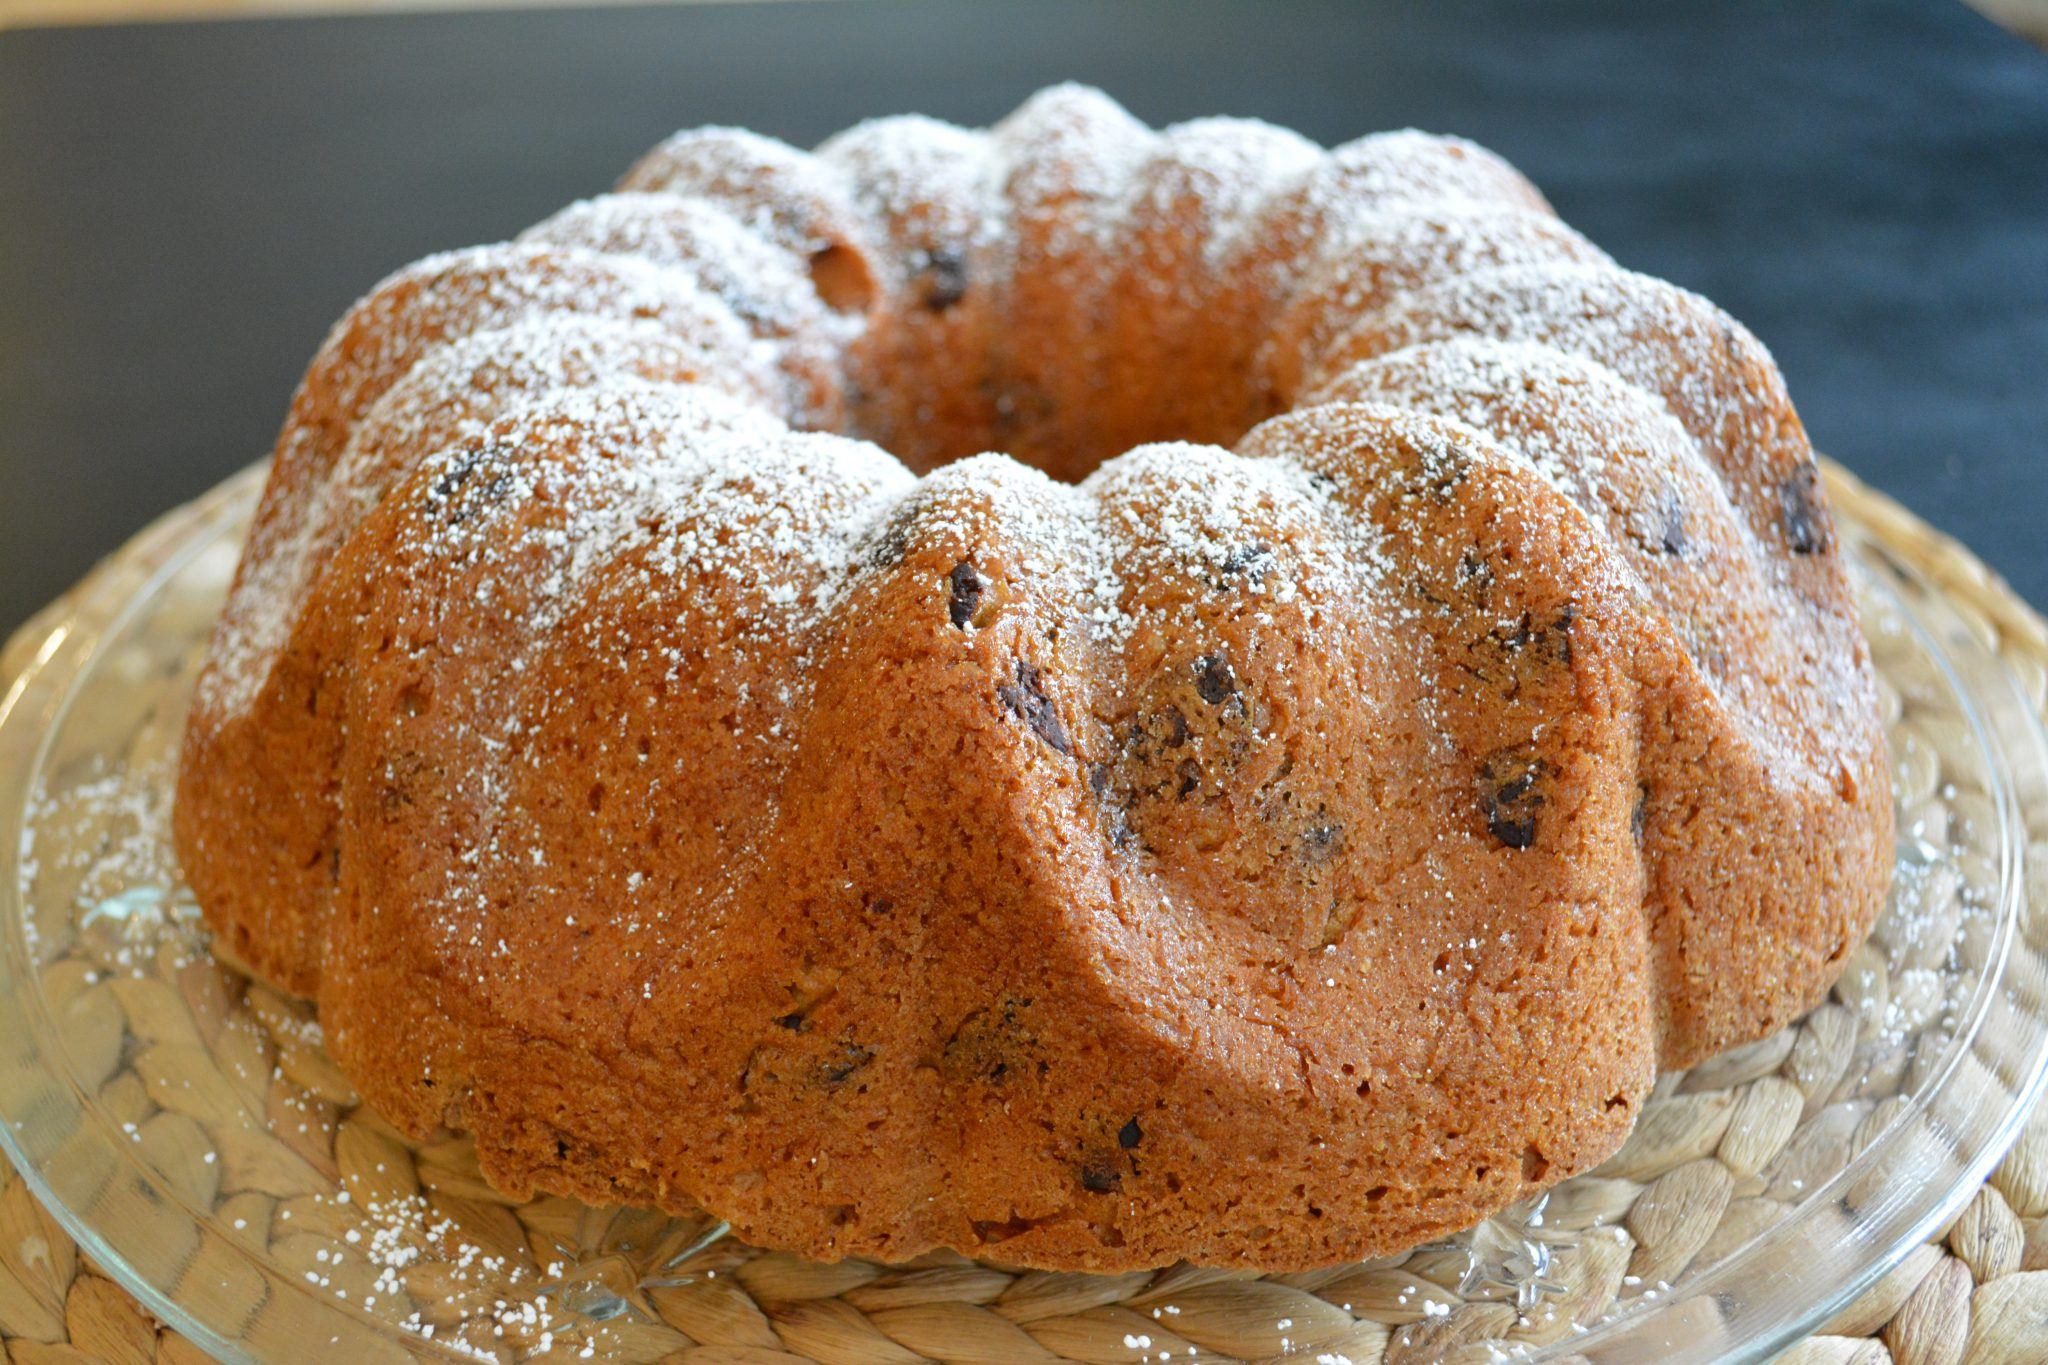 Gluten-free Orange Chocolate Chip Cake